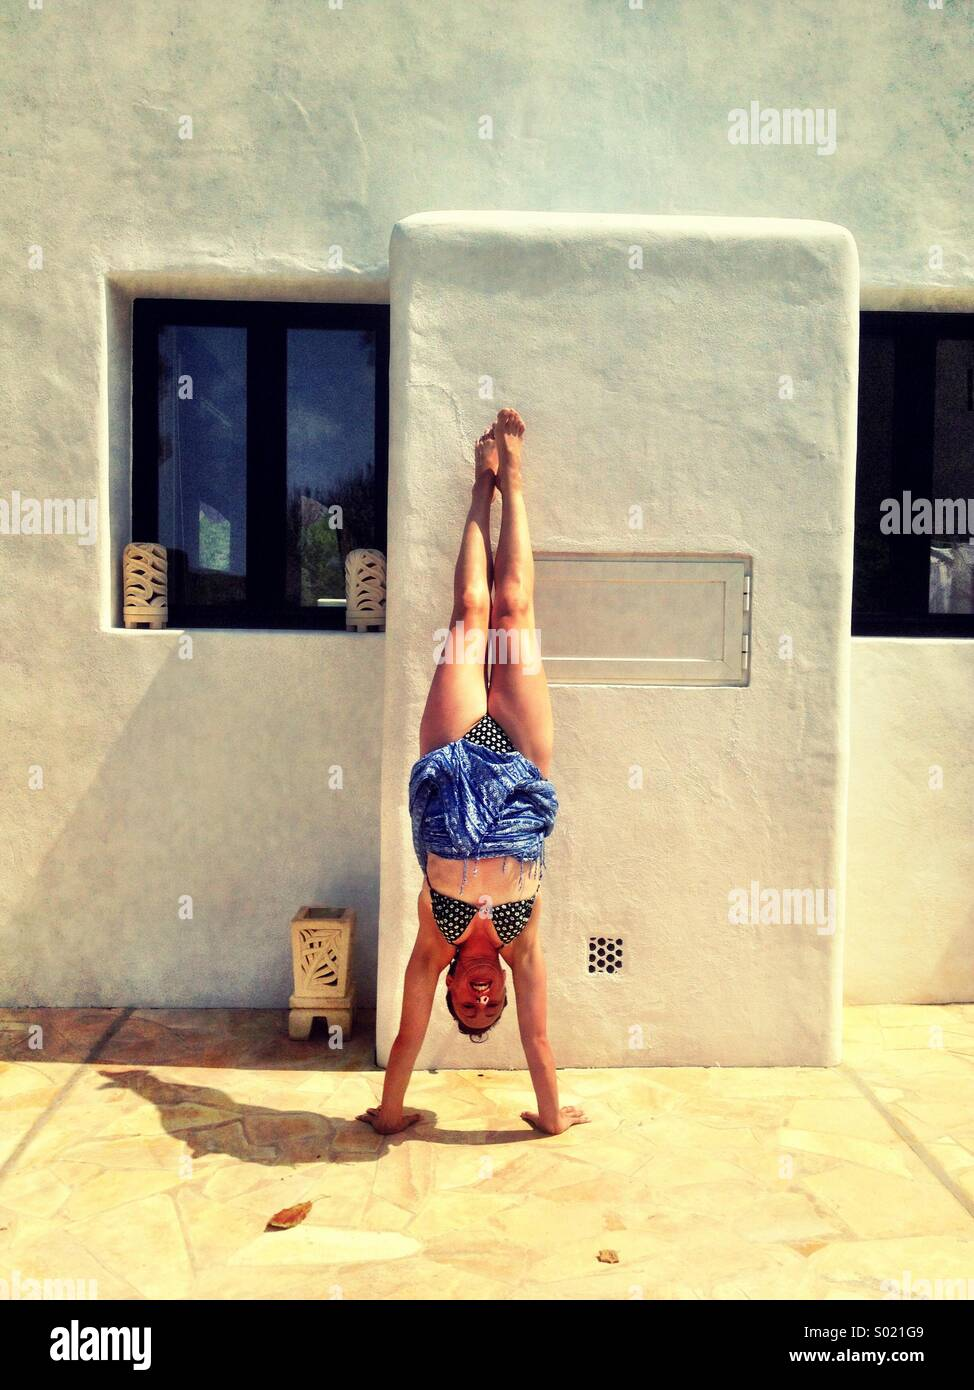 Handstand in Ibiza - Stock Image